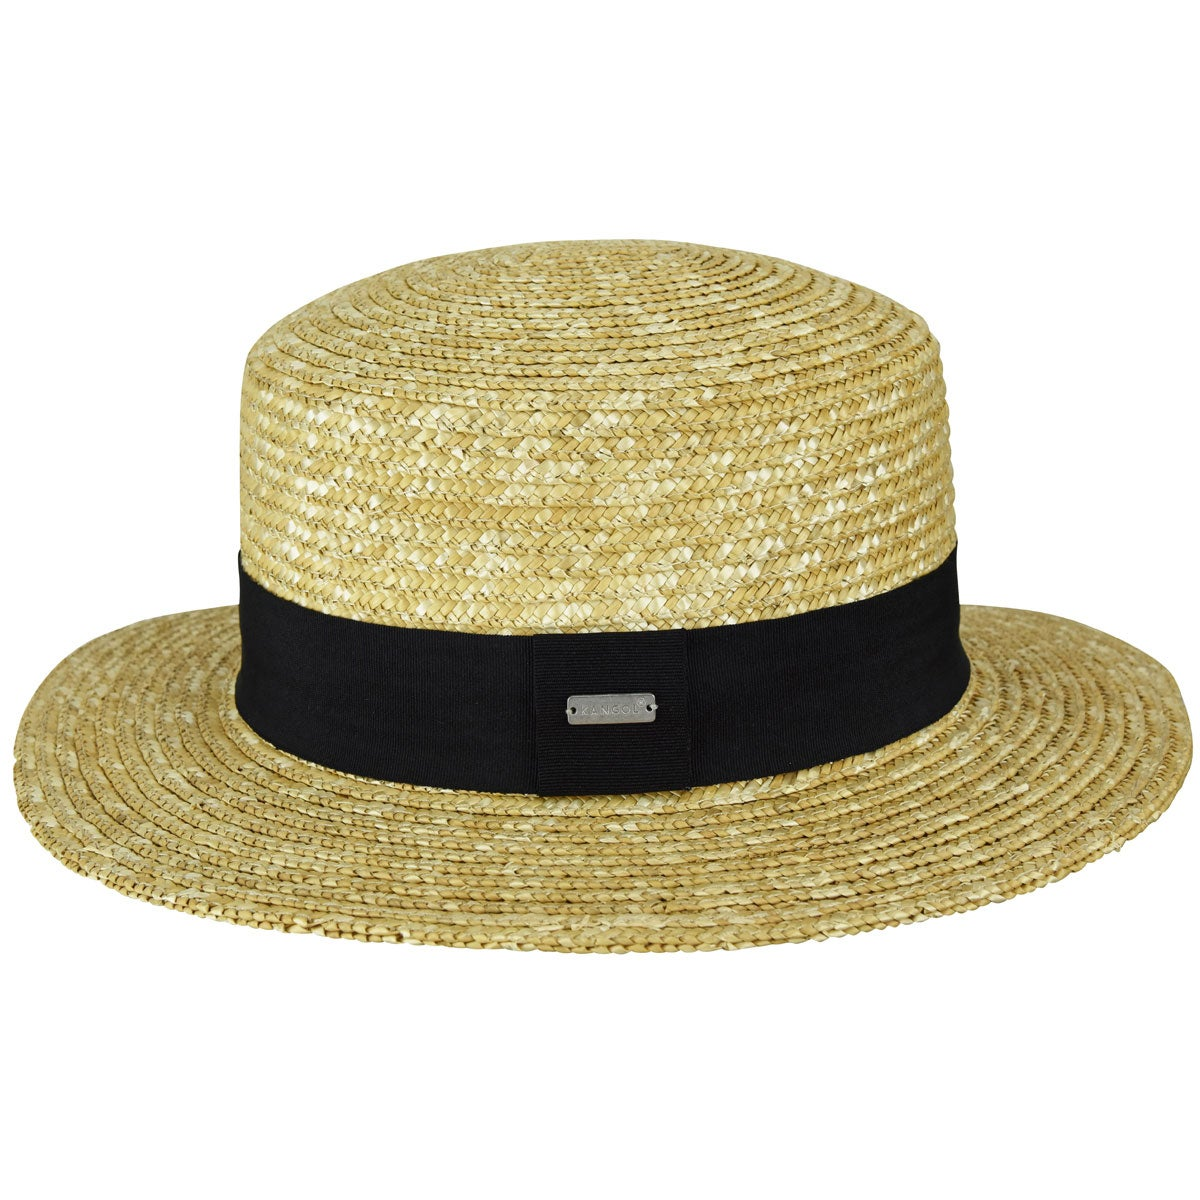 Steampunk Hats | Top Hats | Bowler Wheat Braid Boater $60.00 AT vintagedancer.com